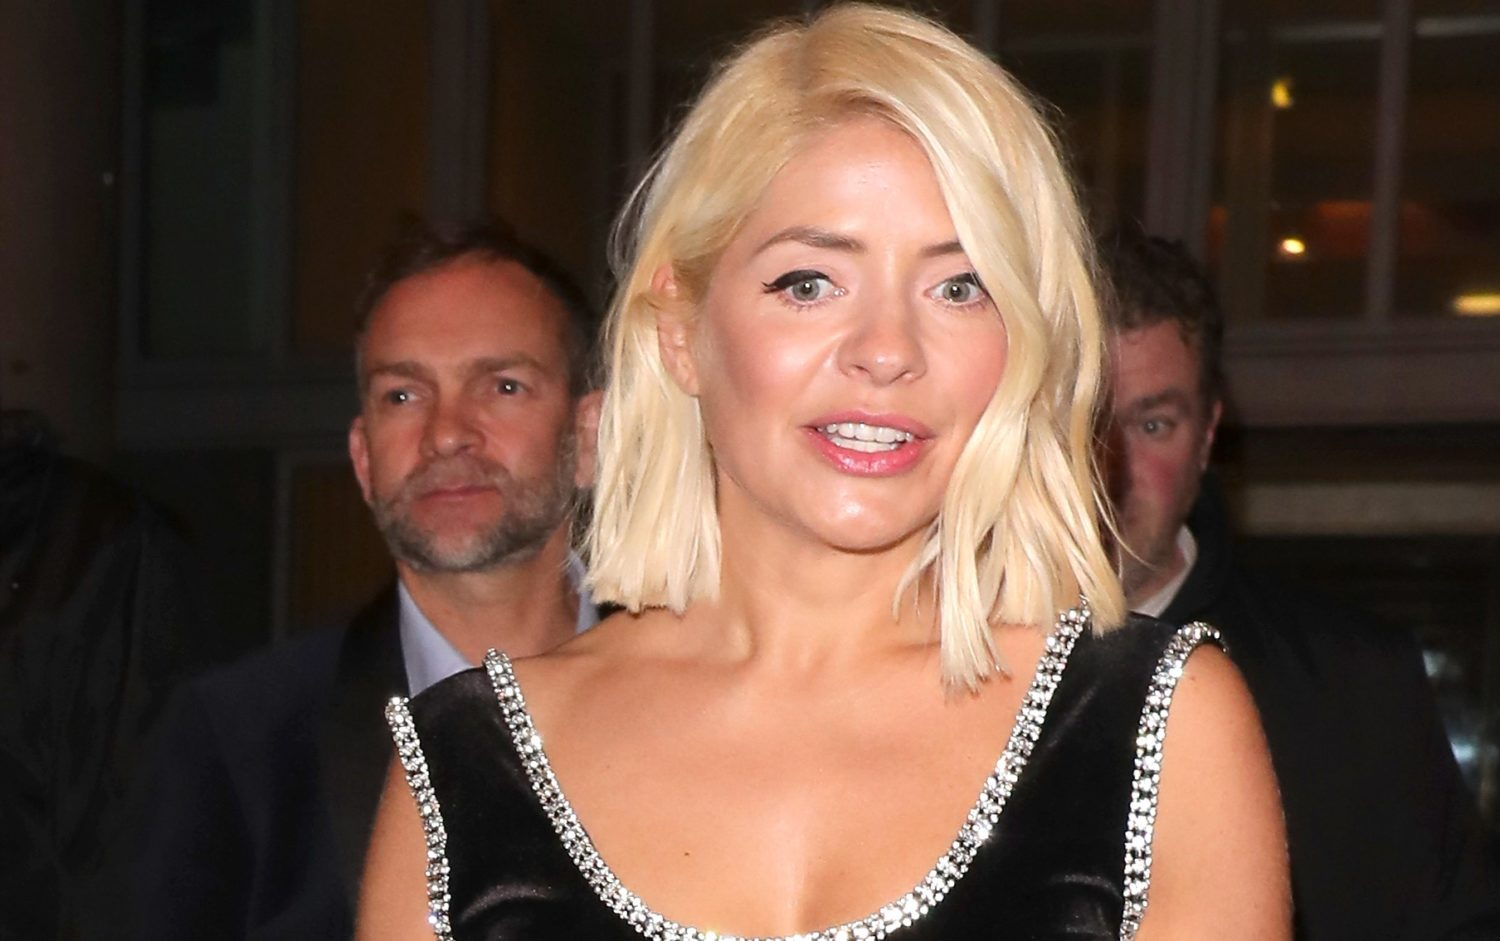 Holly Willoughby shares cute wedding anniversary pic of her parents